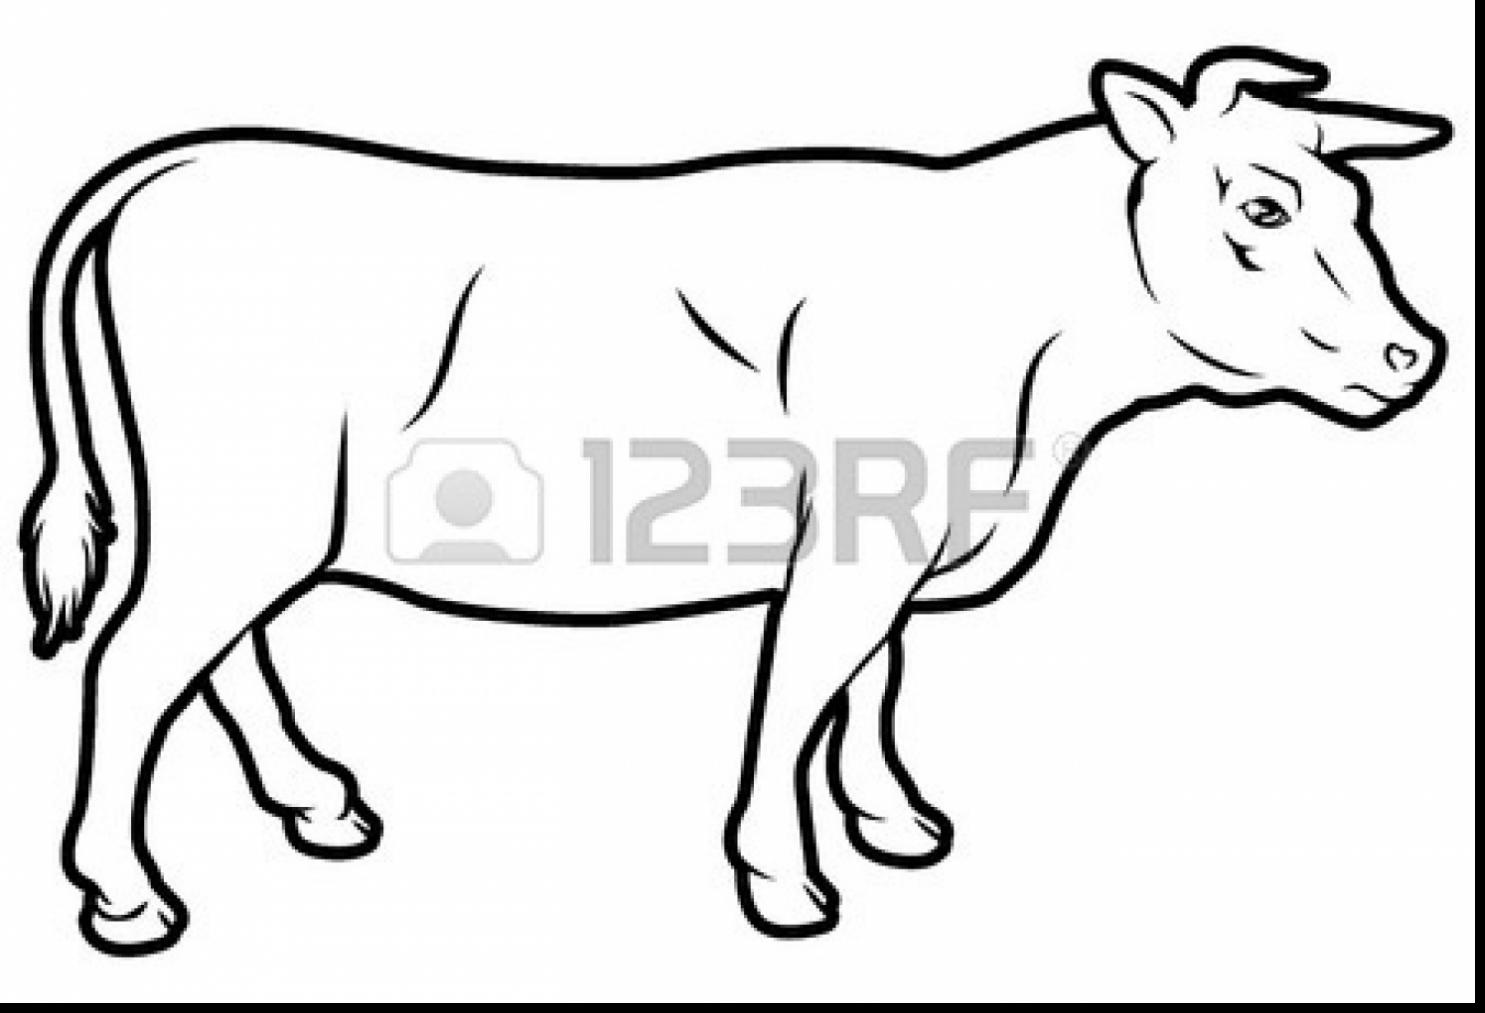 beef cow coloring pages beef cow coloring pages cow coloring pages beef cow cow coloring pages beef